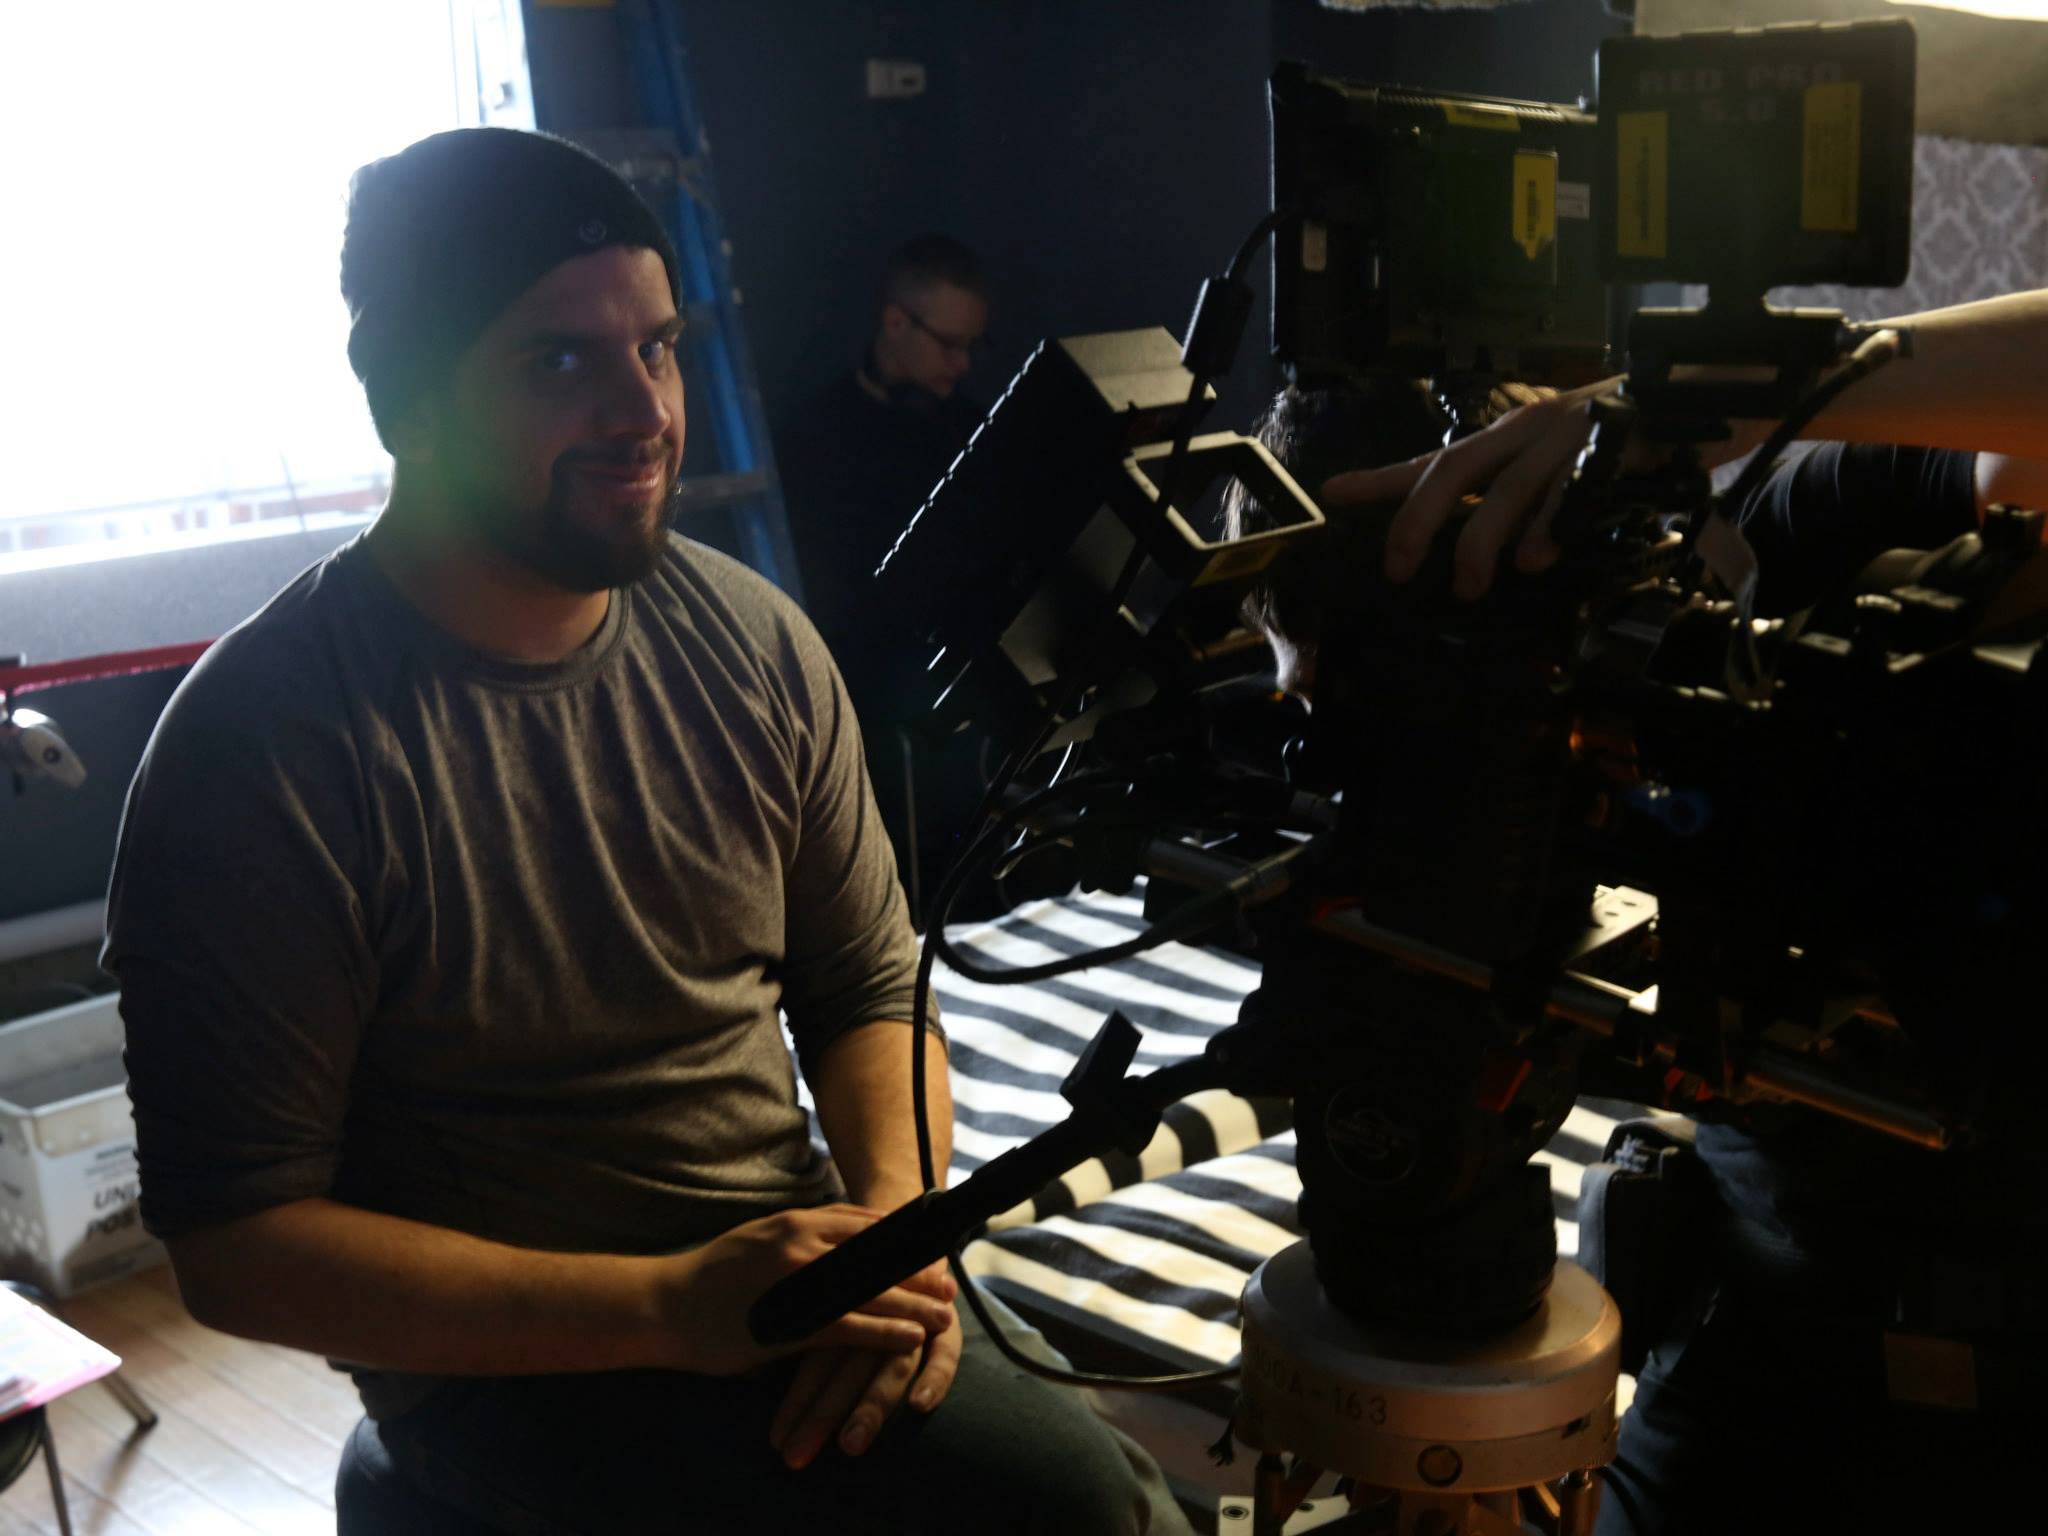 Director of Photography Dominick Sivilli